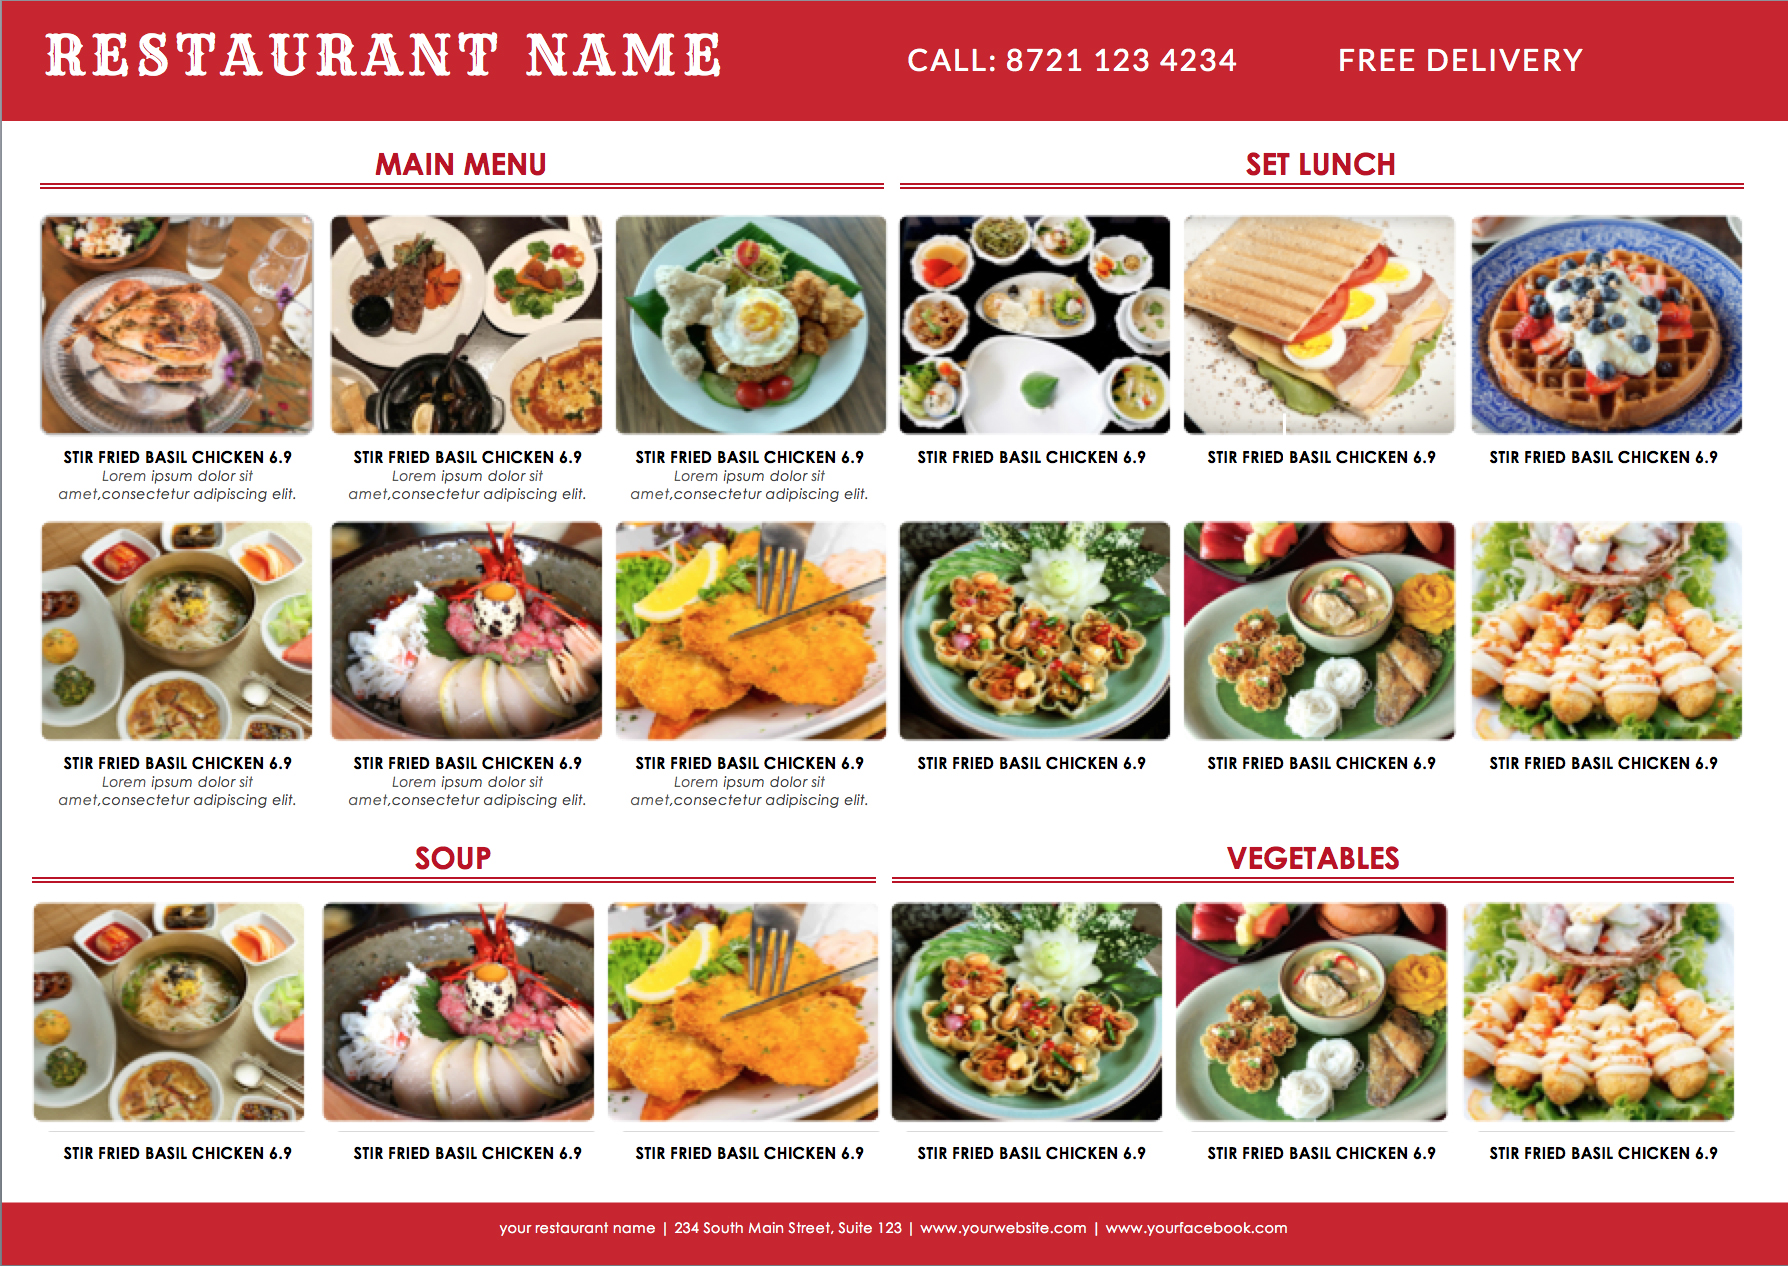 THAI MENU KORIA MENU ASIA FOOD